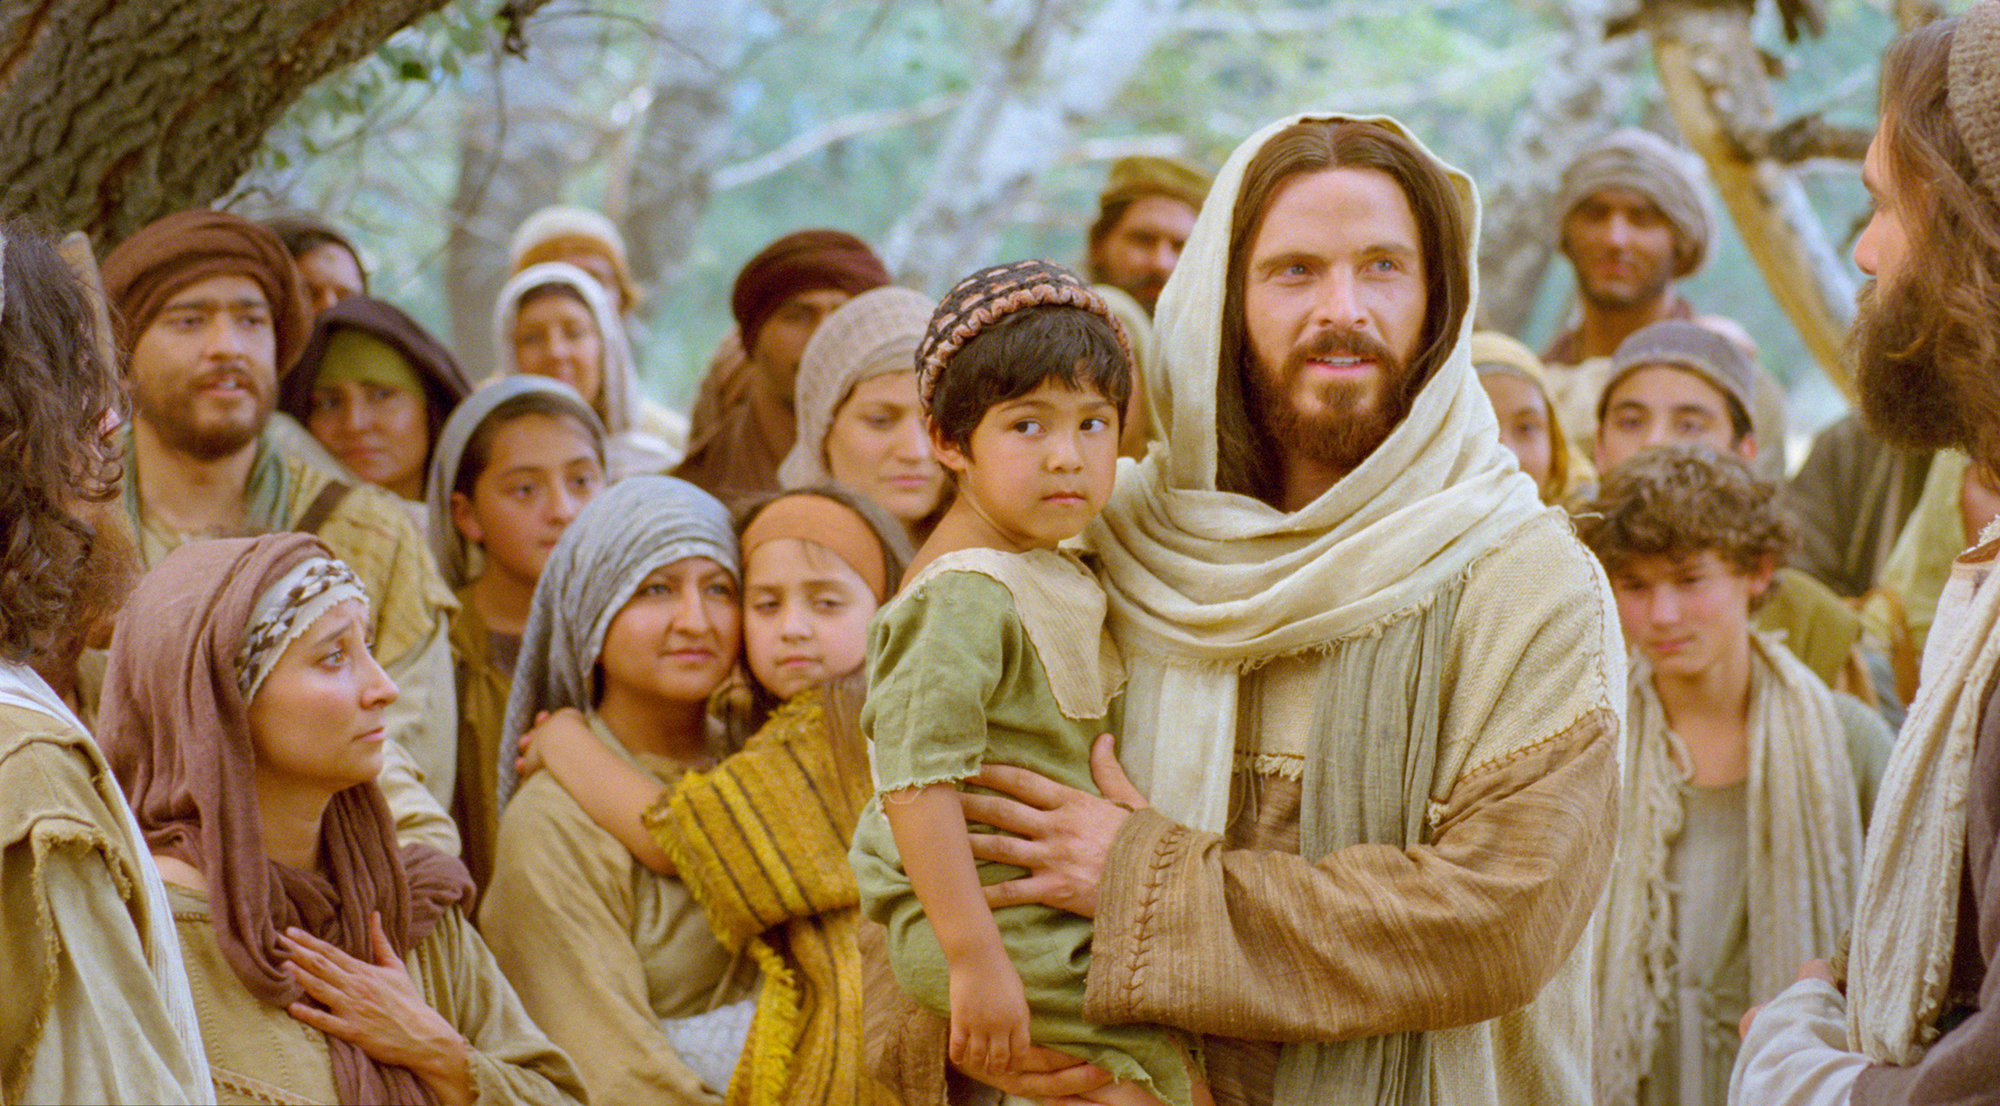 jesus and people Jesus looked up and saw the rich putting their gifts into the offering box, and he saw a poor widow put in two small copper coins and he said, truly, i tell you, this poor widow has put in more than all of them.